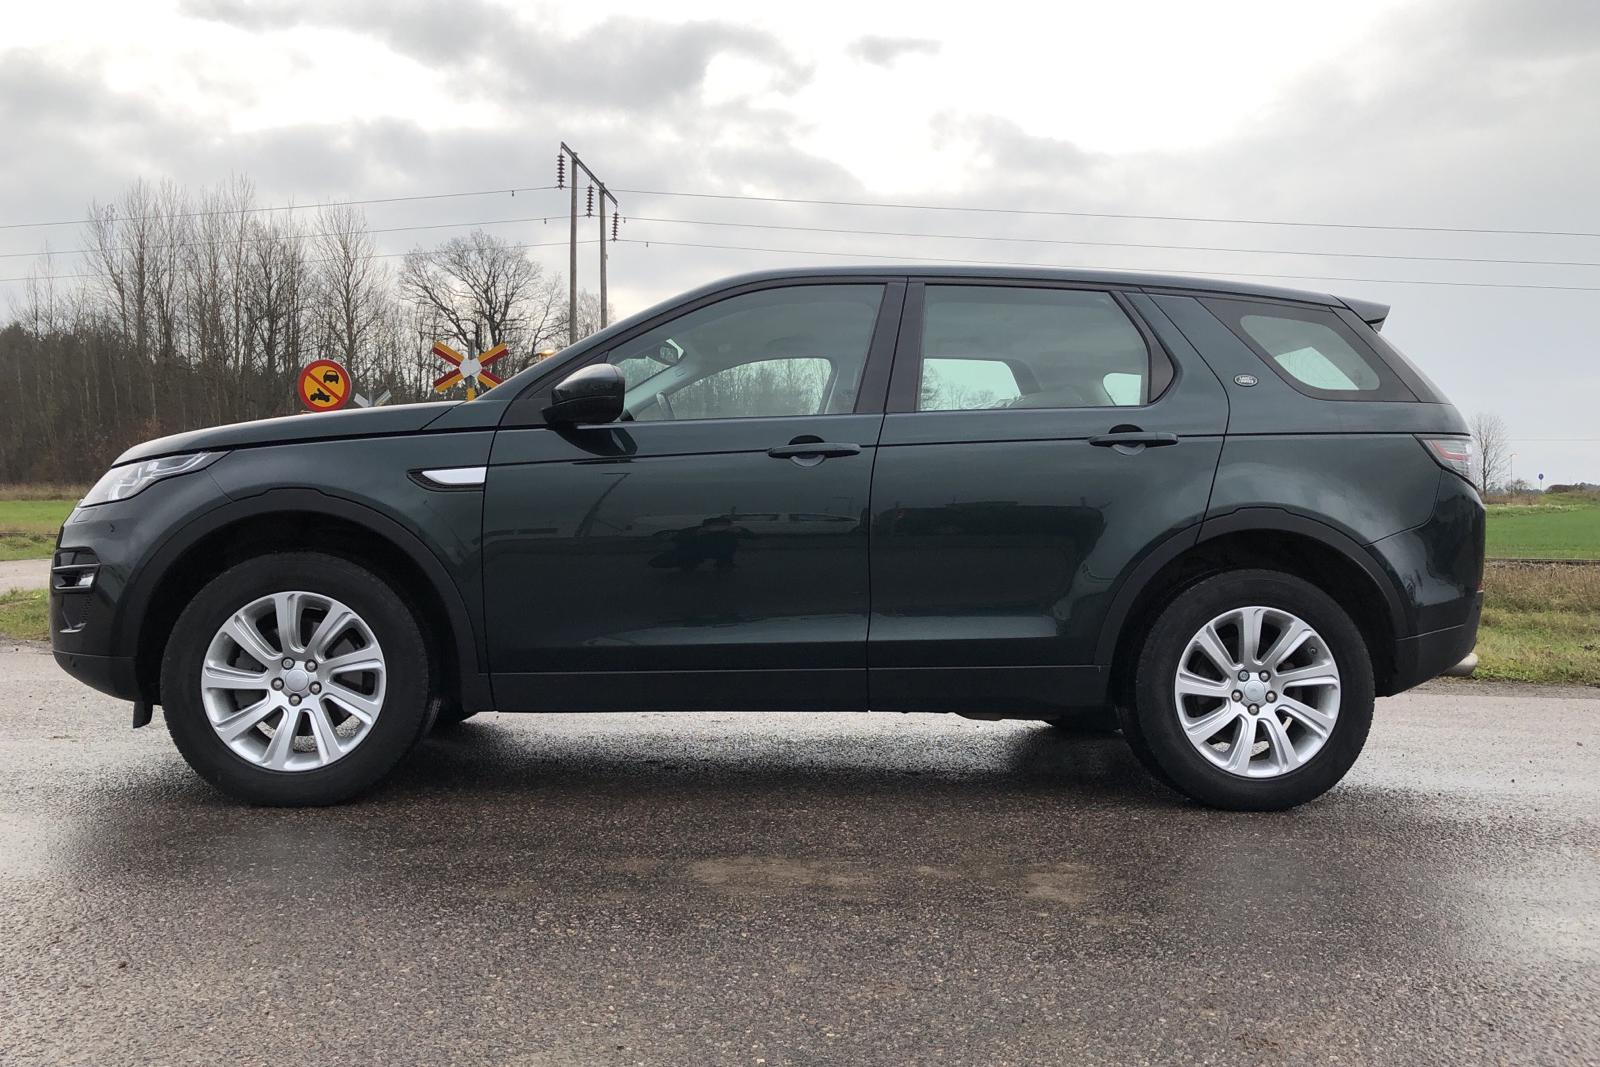 Land Rover Discovery Sport 2.0 TD4 AWD (180hk) - 66 280 km - Automatic - green - 2016